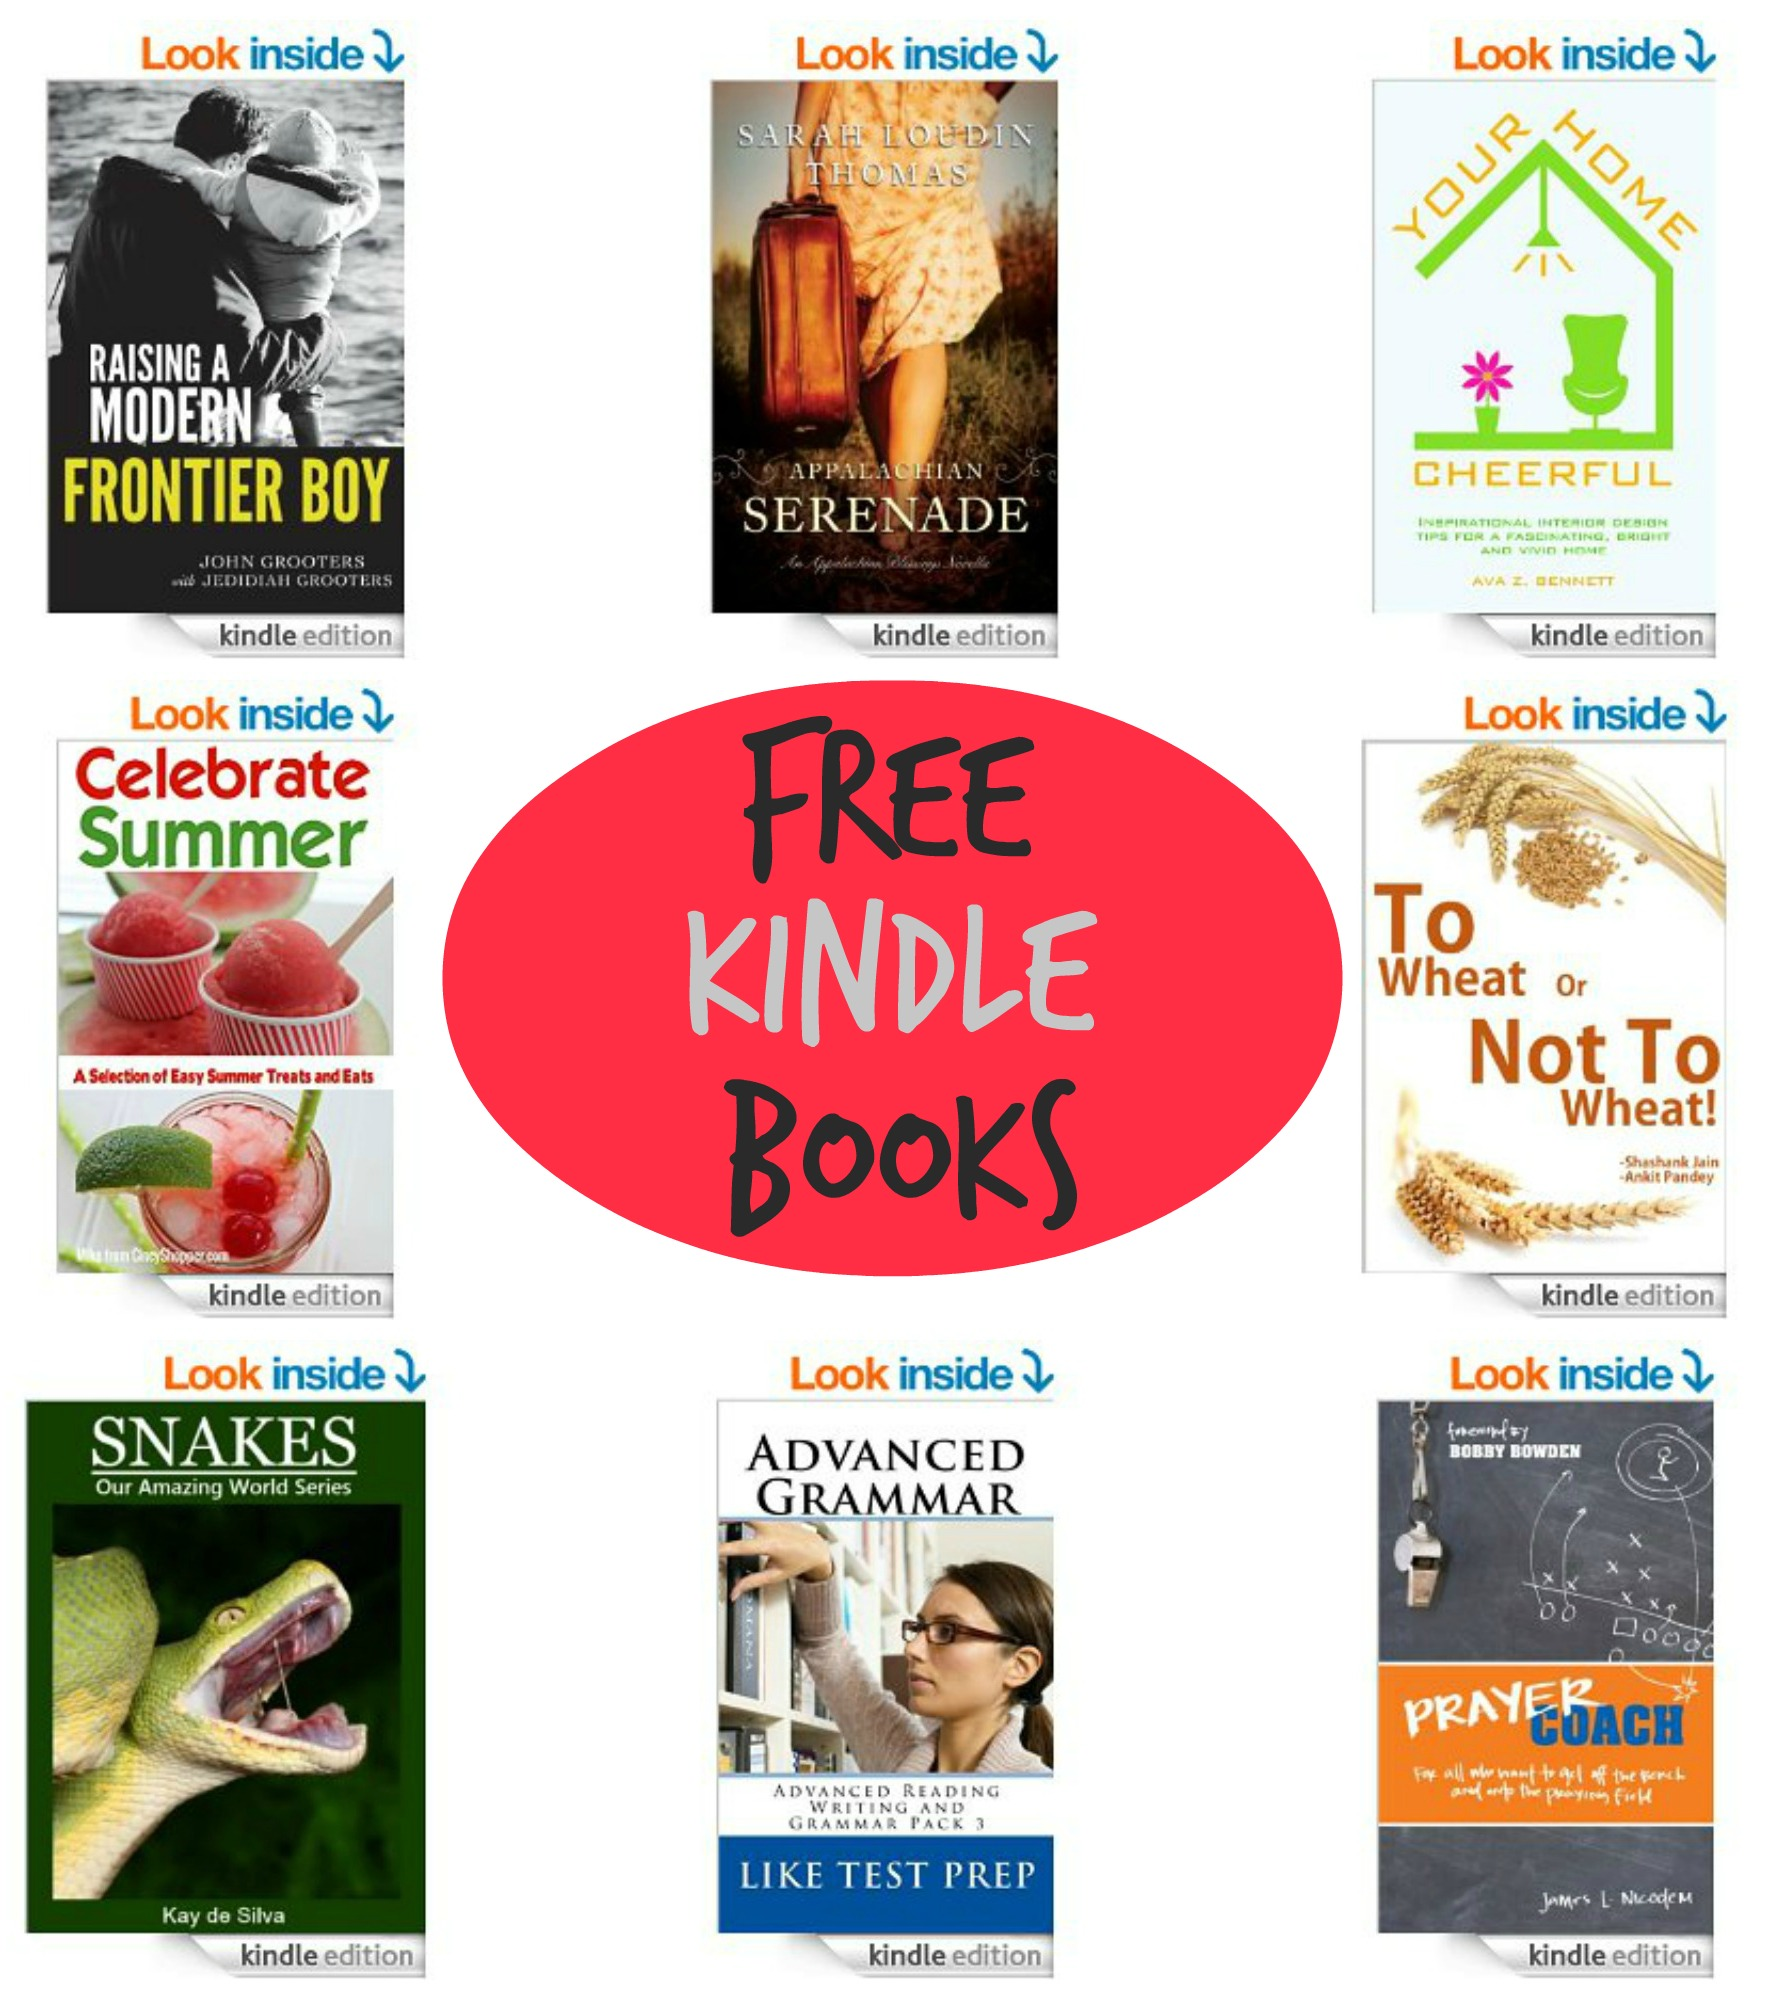 17 FREE Kindle Books: Raising a Modern Frontier Boy ...